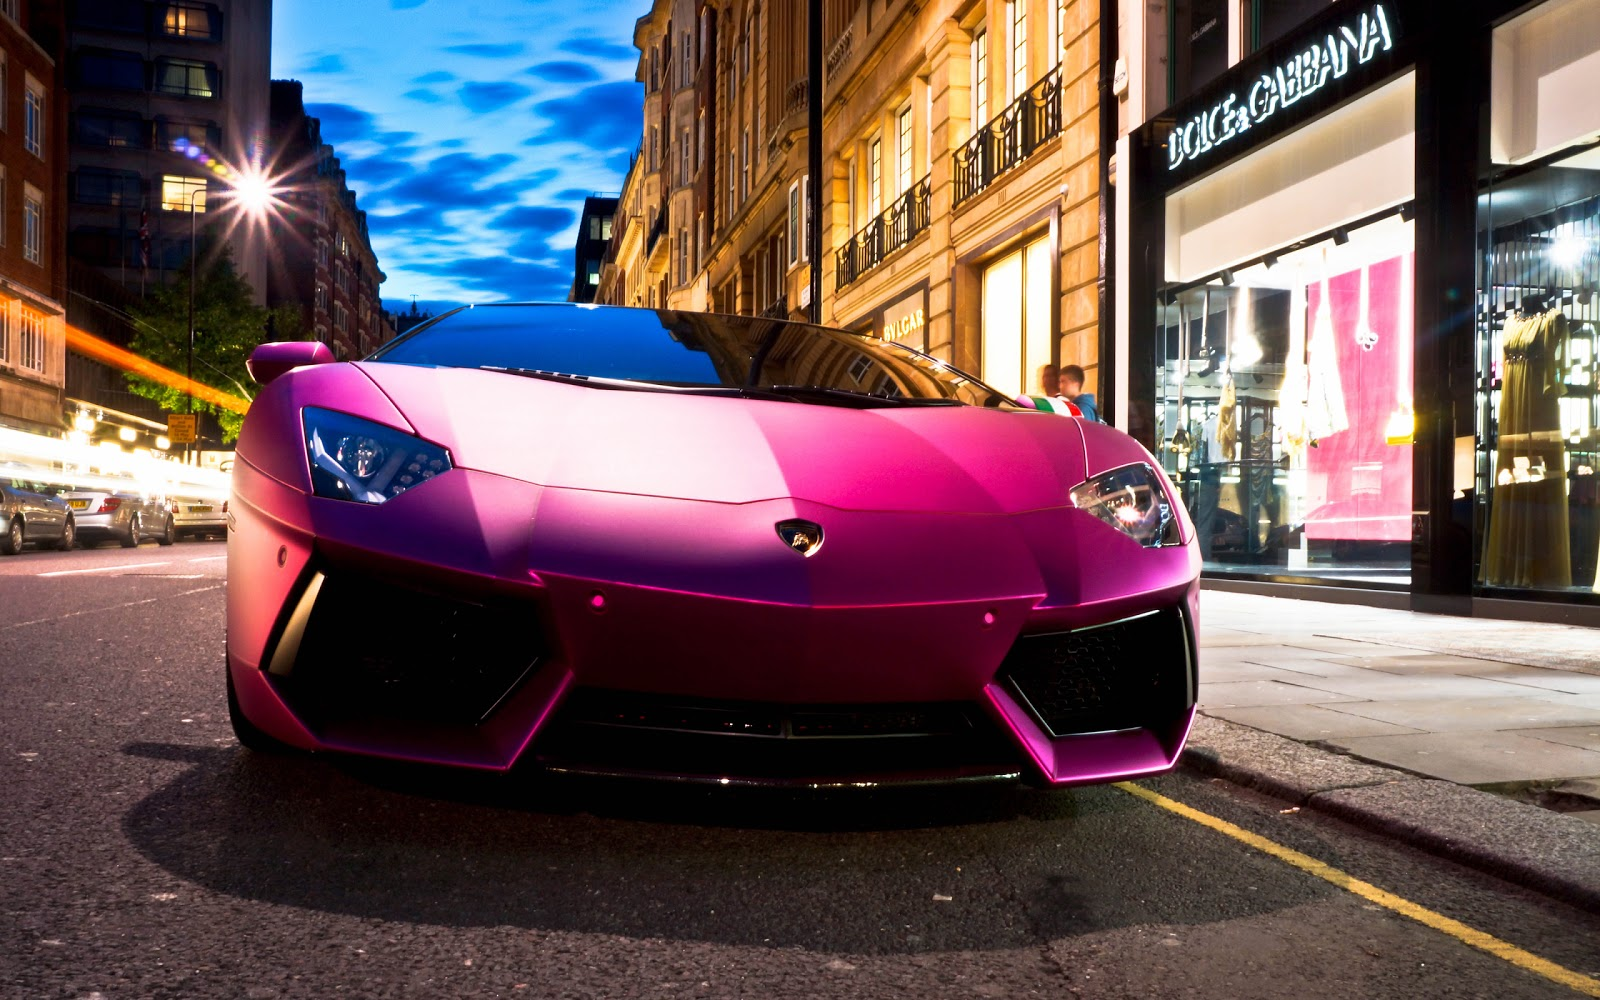 Wallpaper hd : Lamborghini Aventador LP760 4 Oakley